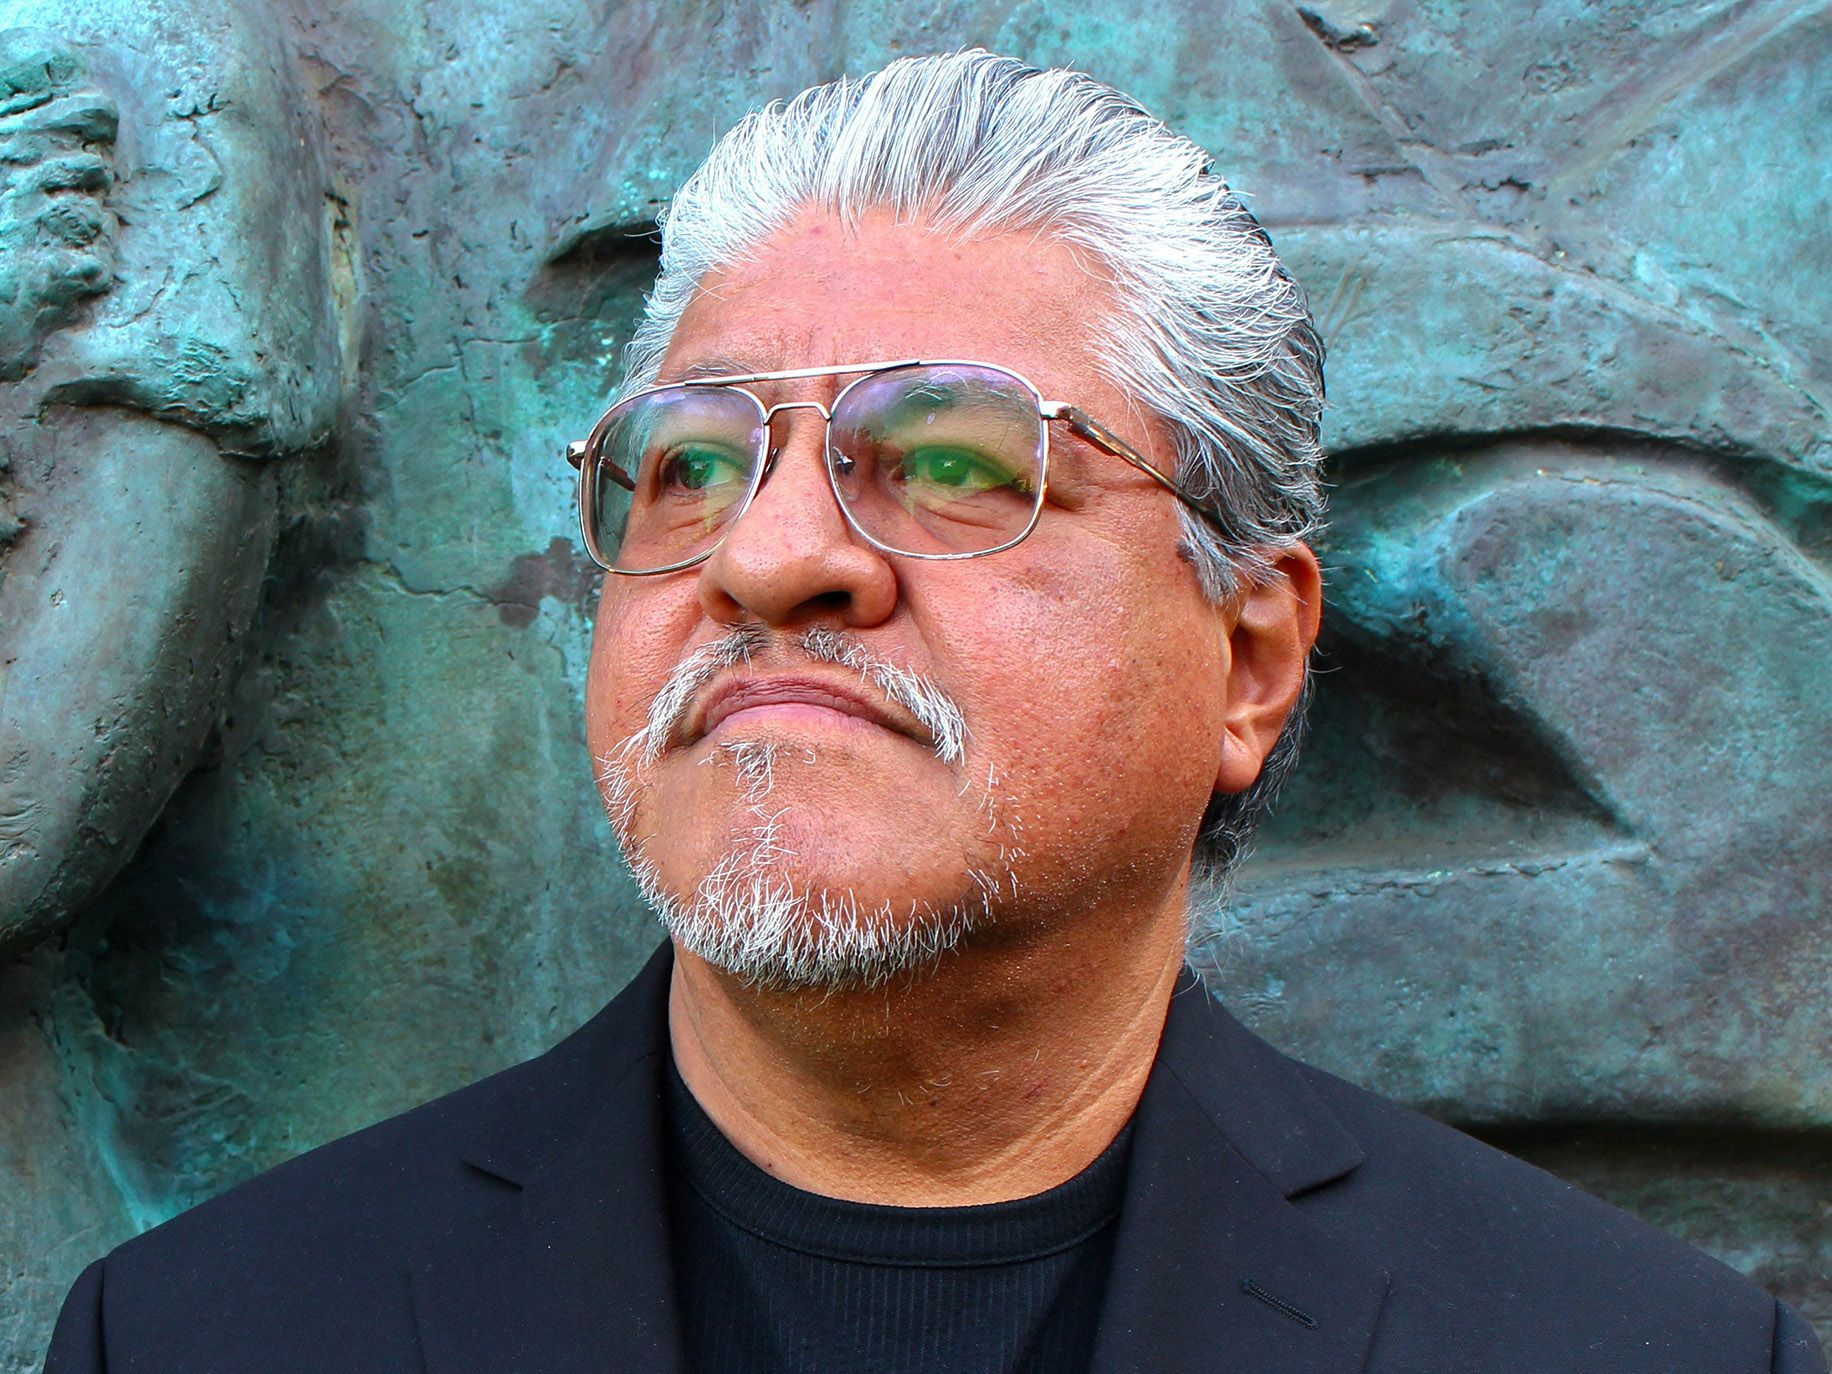 Luis J. Rodriguez was poet laureate of Los Angeles from 2014 to 2016. He is also the author of eight books of poetry.